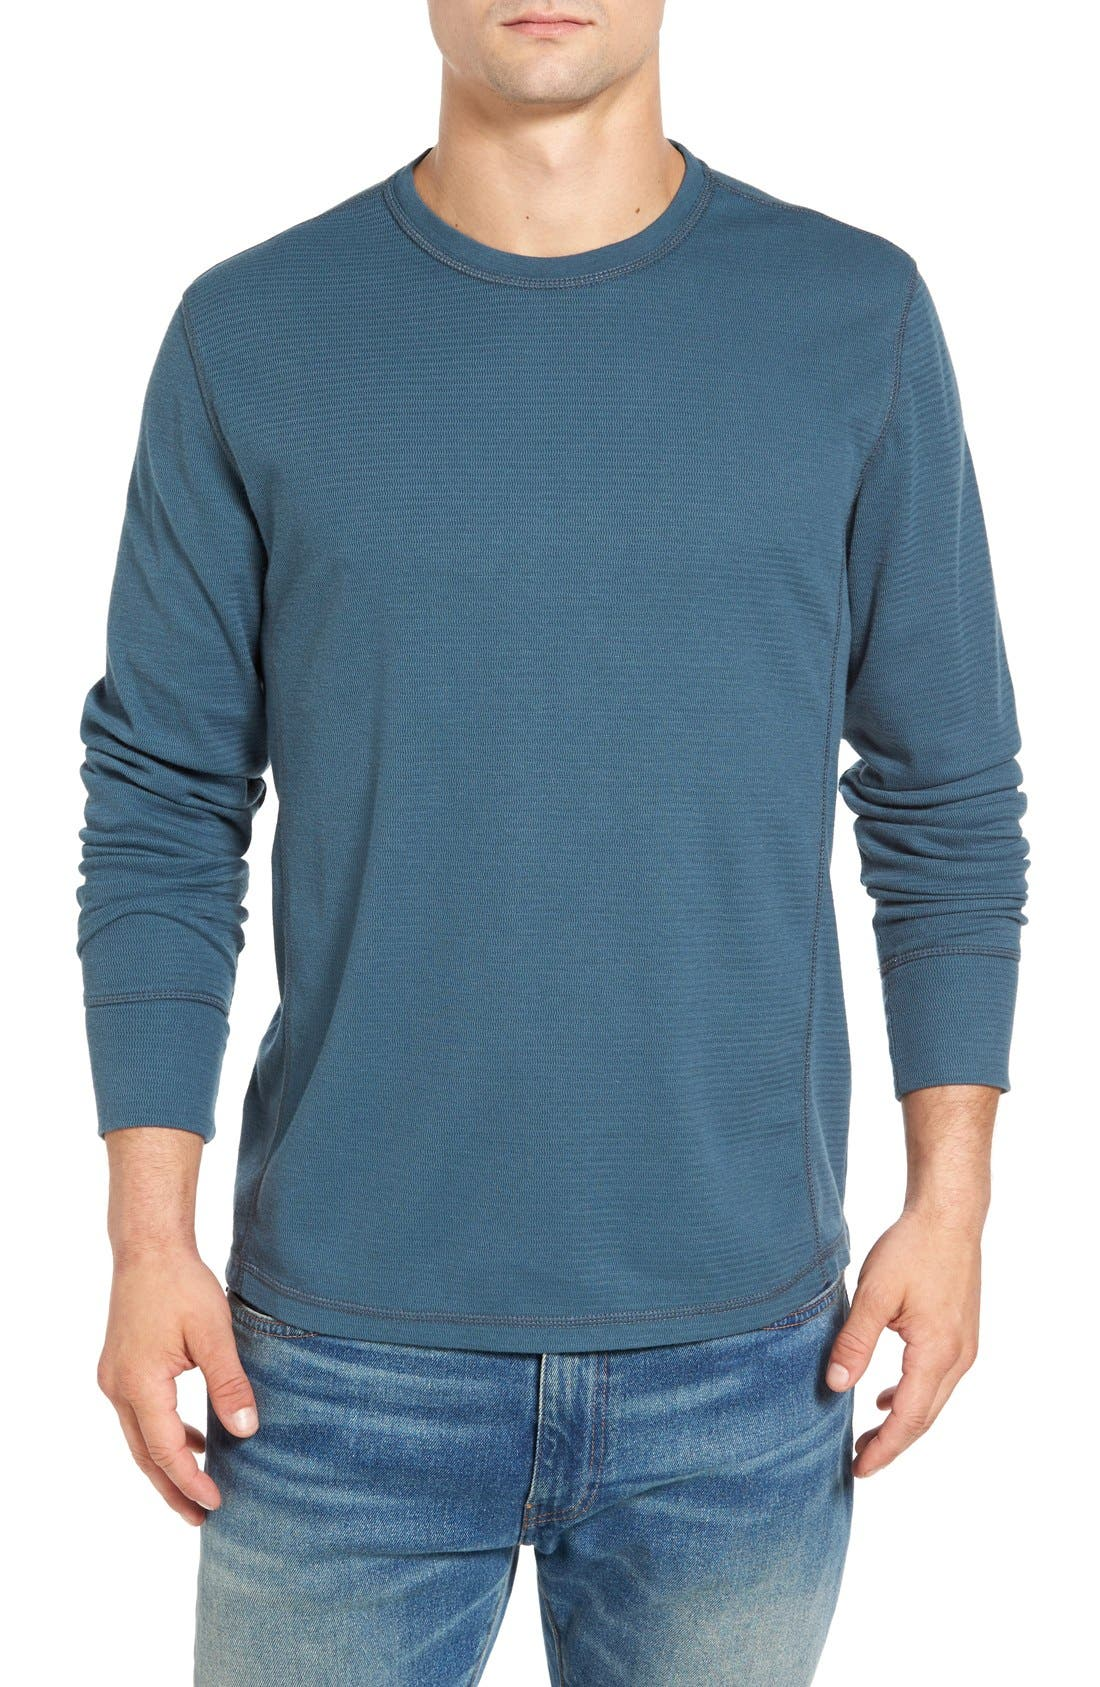 Jeremiah Larsen Zigzag Thermal T-Shirt